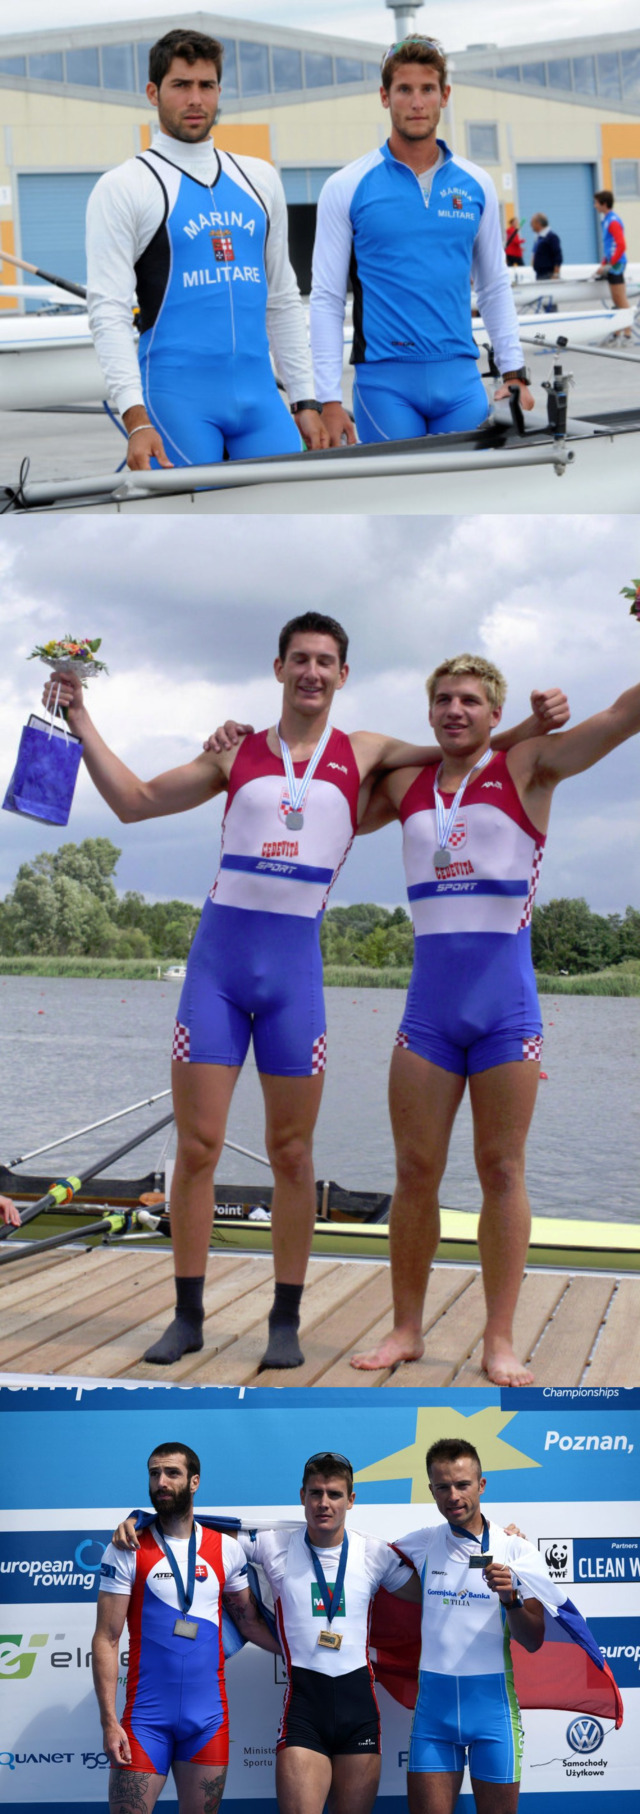 Rowers and athletes wearing tight spandex singlets